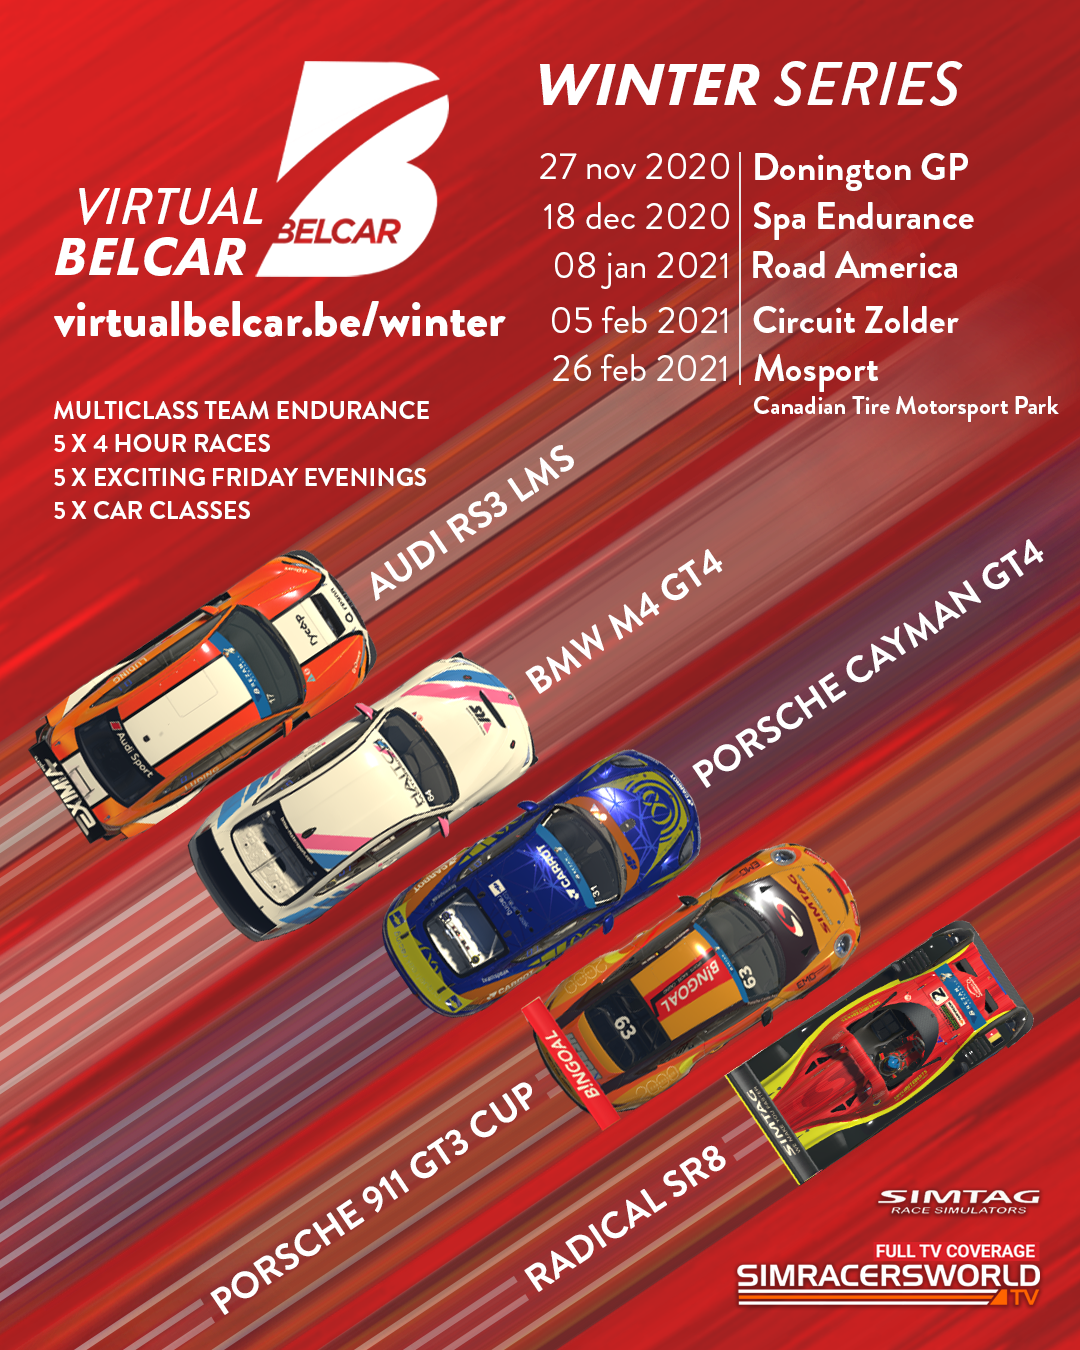 virtual belcar winter series